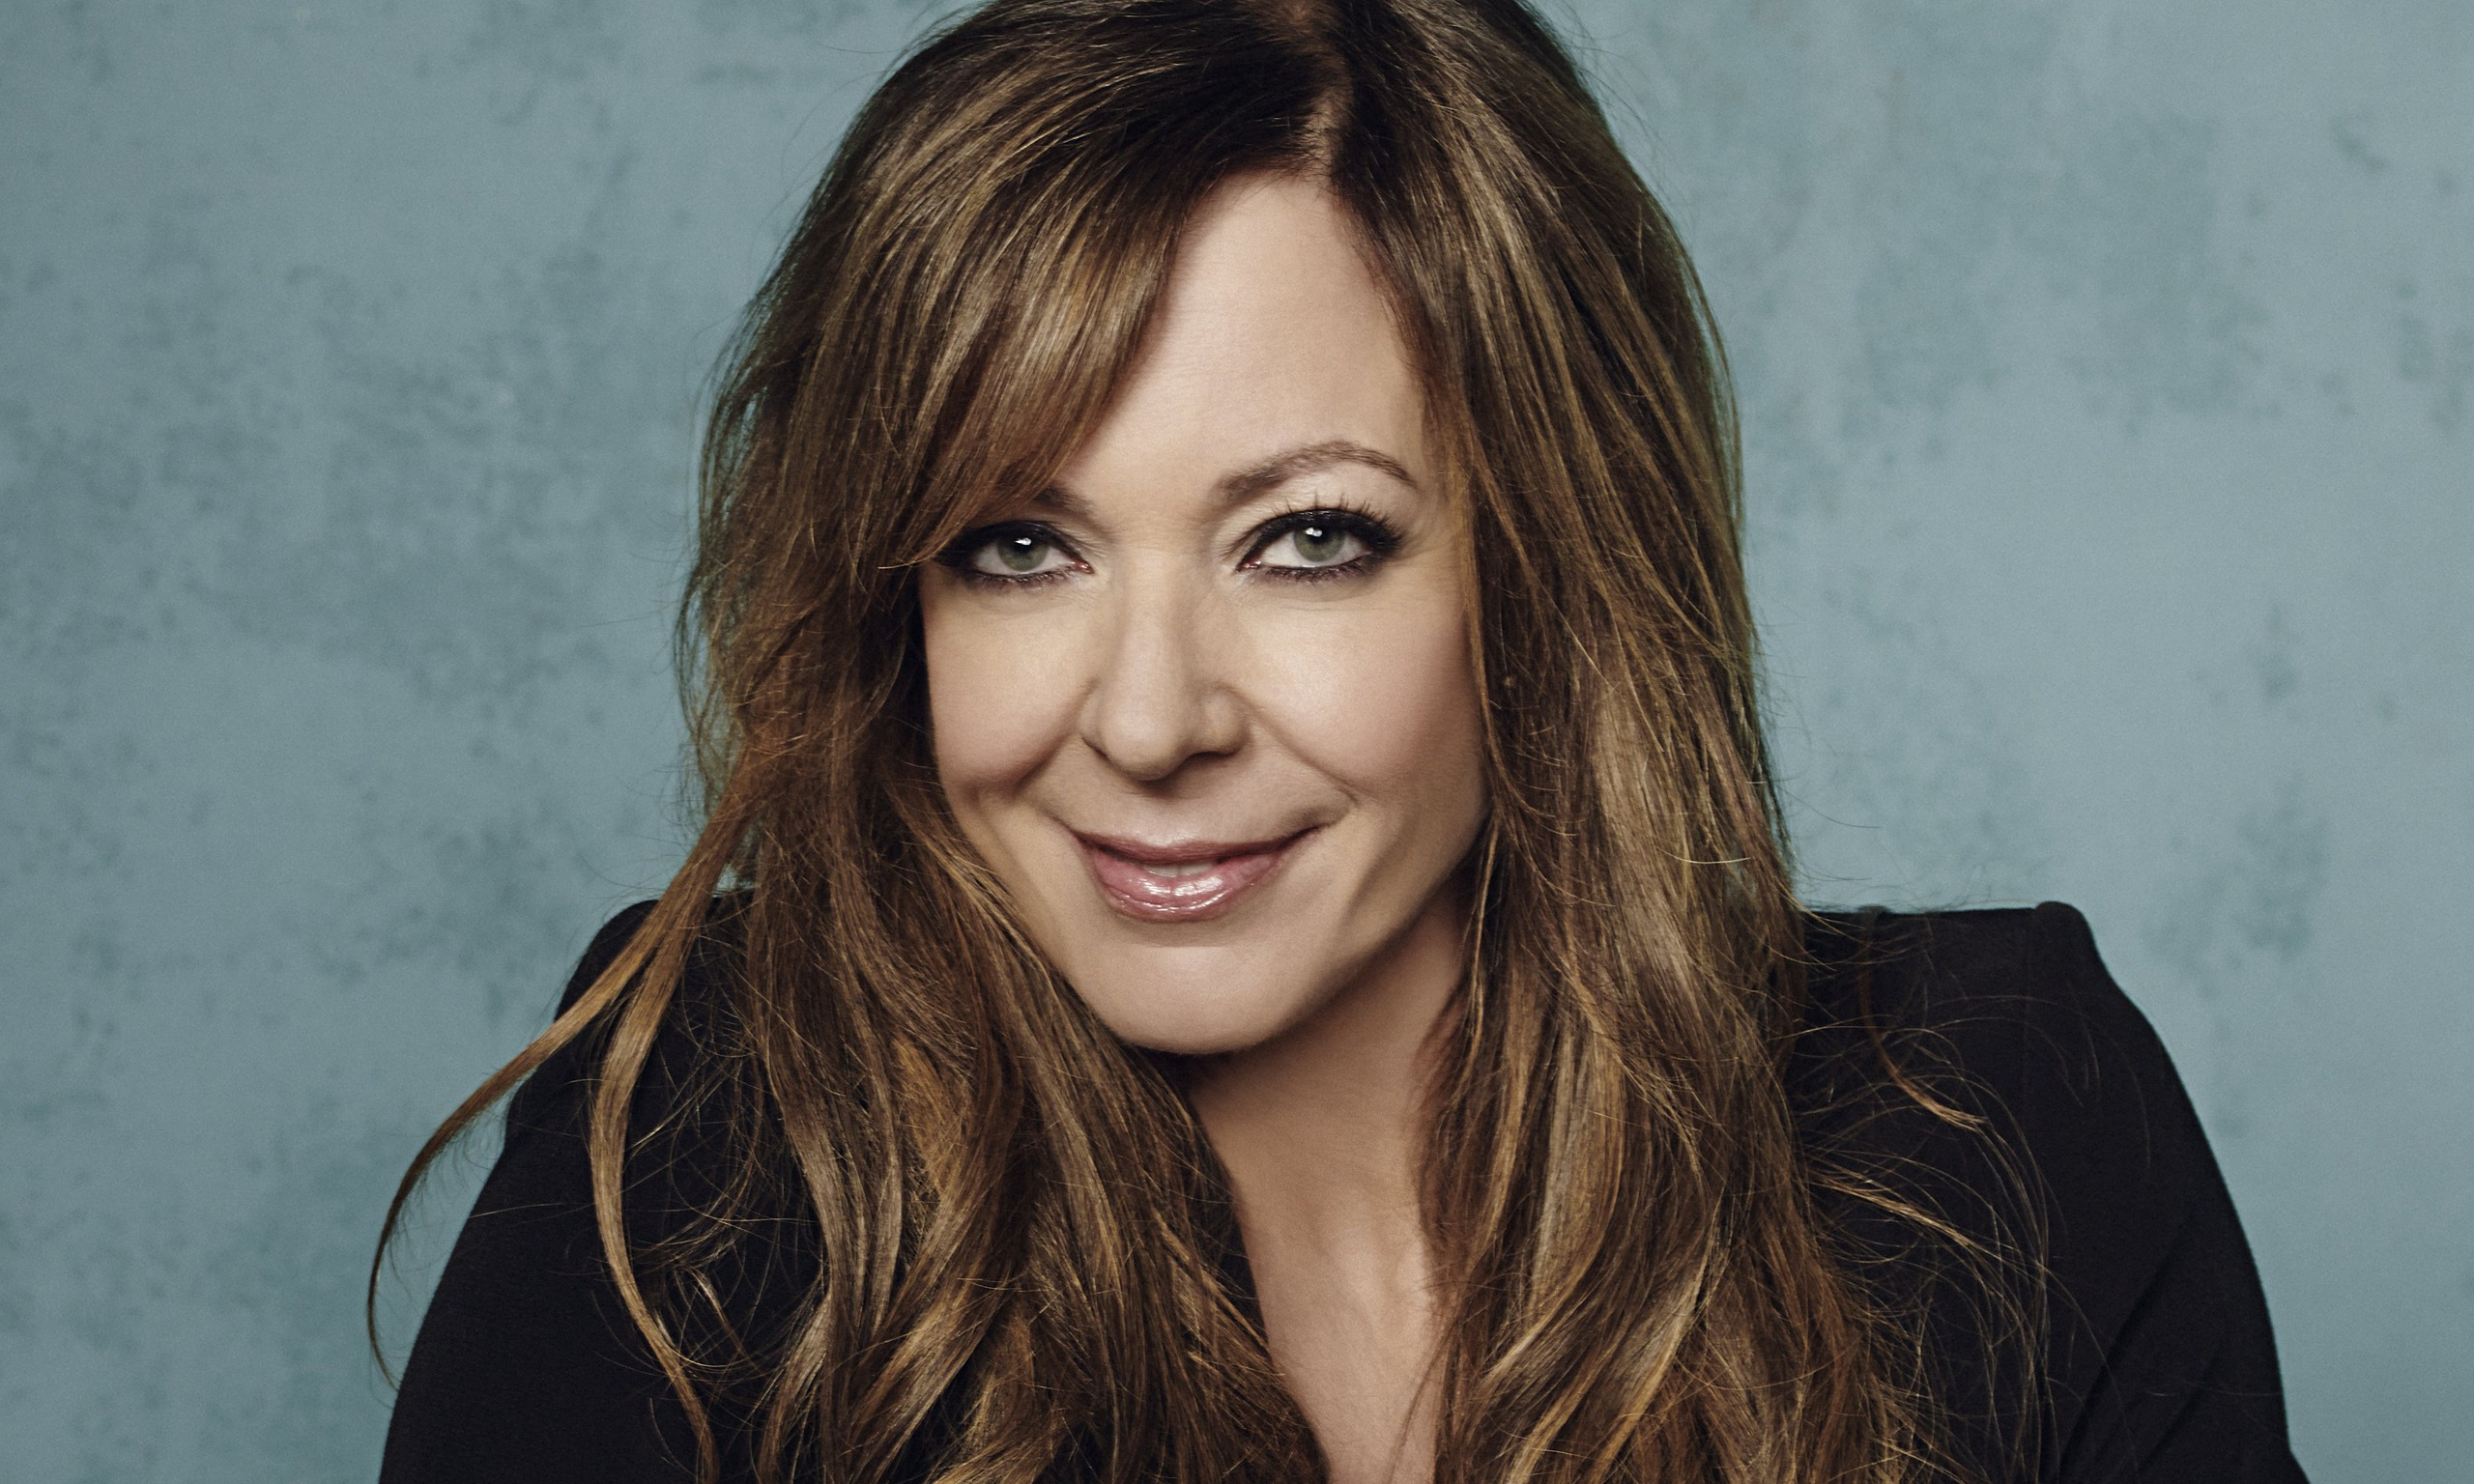 Allison Janney earned a  million dollar salary - leaving the net worth at 2 million in 2018